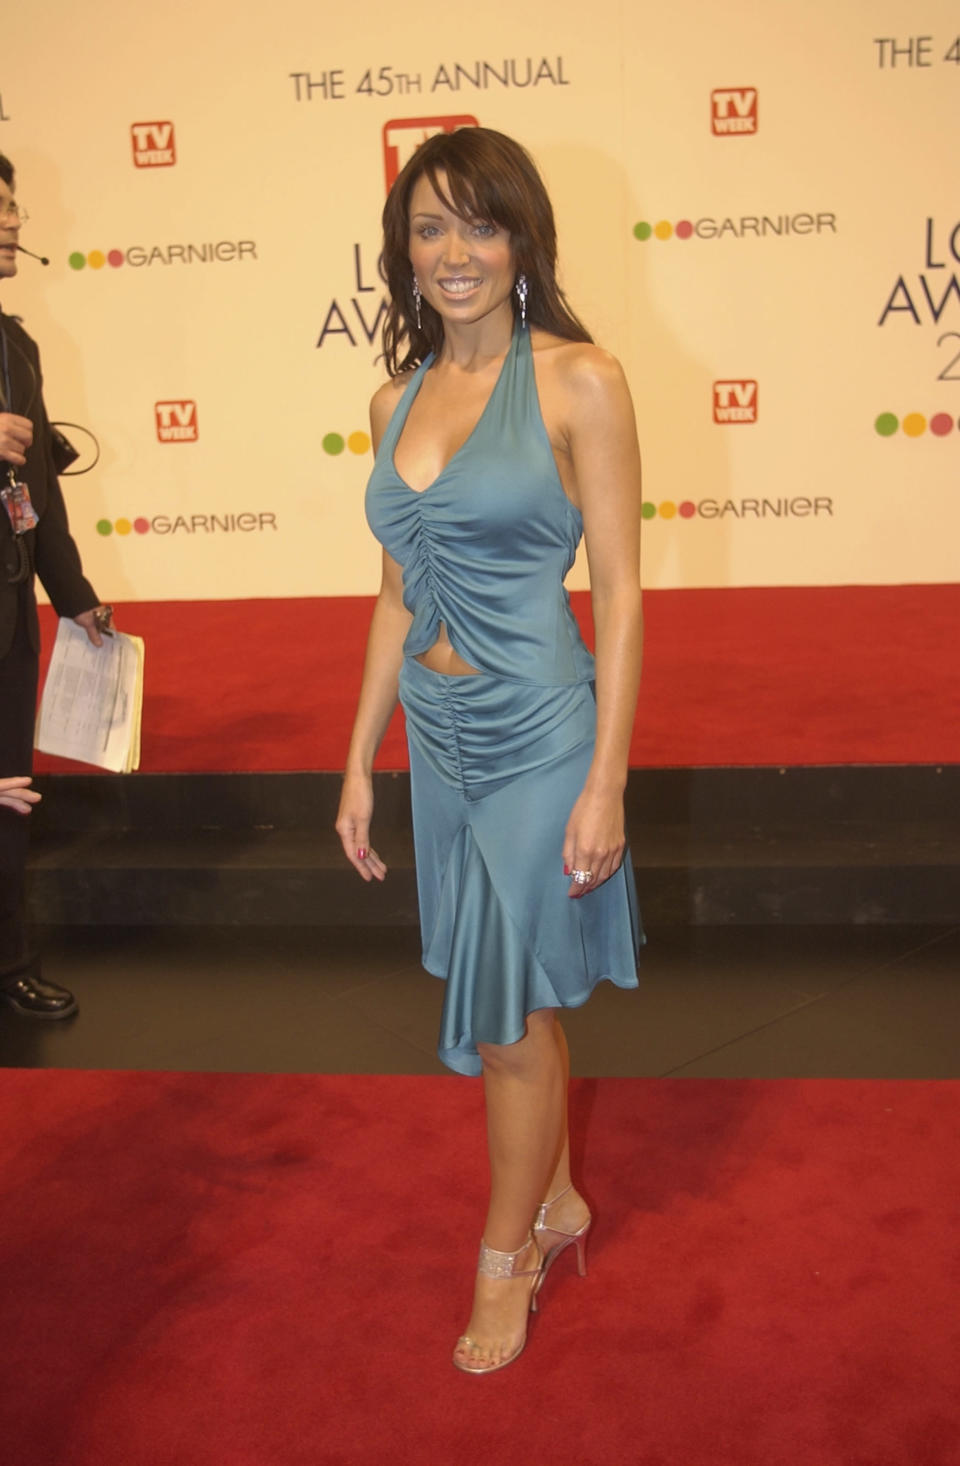 Dannii Minogue typically gets it so right on the red carpet - but in 2003 she got it so, so wrong. The TV host looked more Supre than supermodel in this ruched blue number featuring a belly-baring cut-out and bias-cut skirt. Hey, it may have been hot in the early 2000s but this outfit is most definitely best left in the past. Photo: Getty Images.